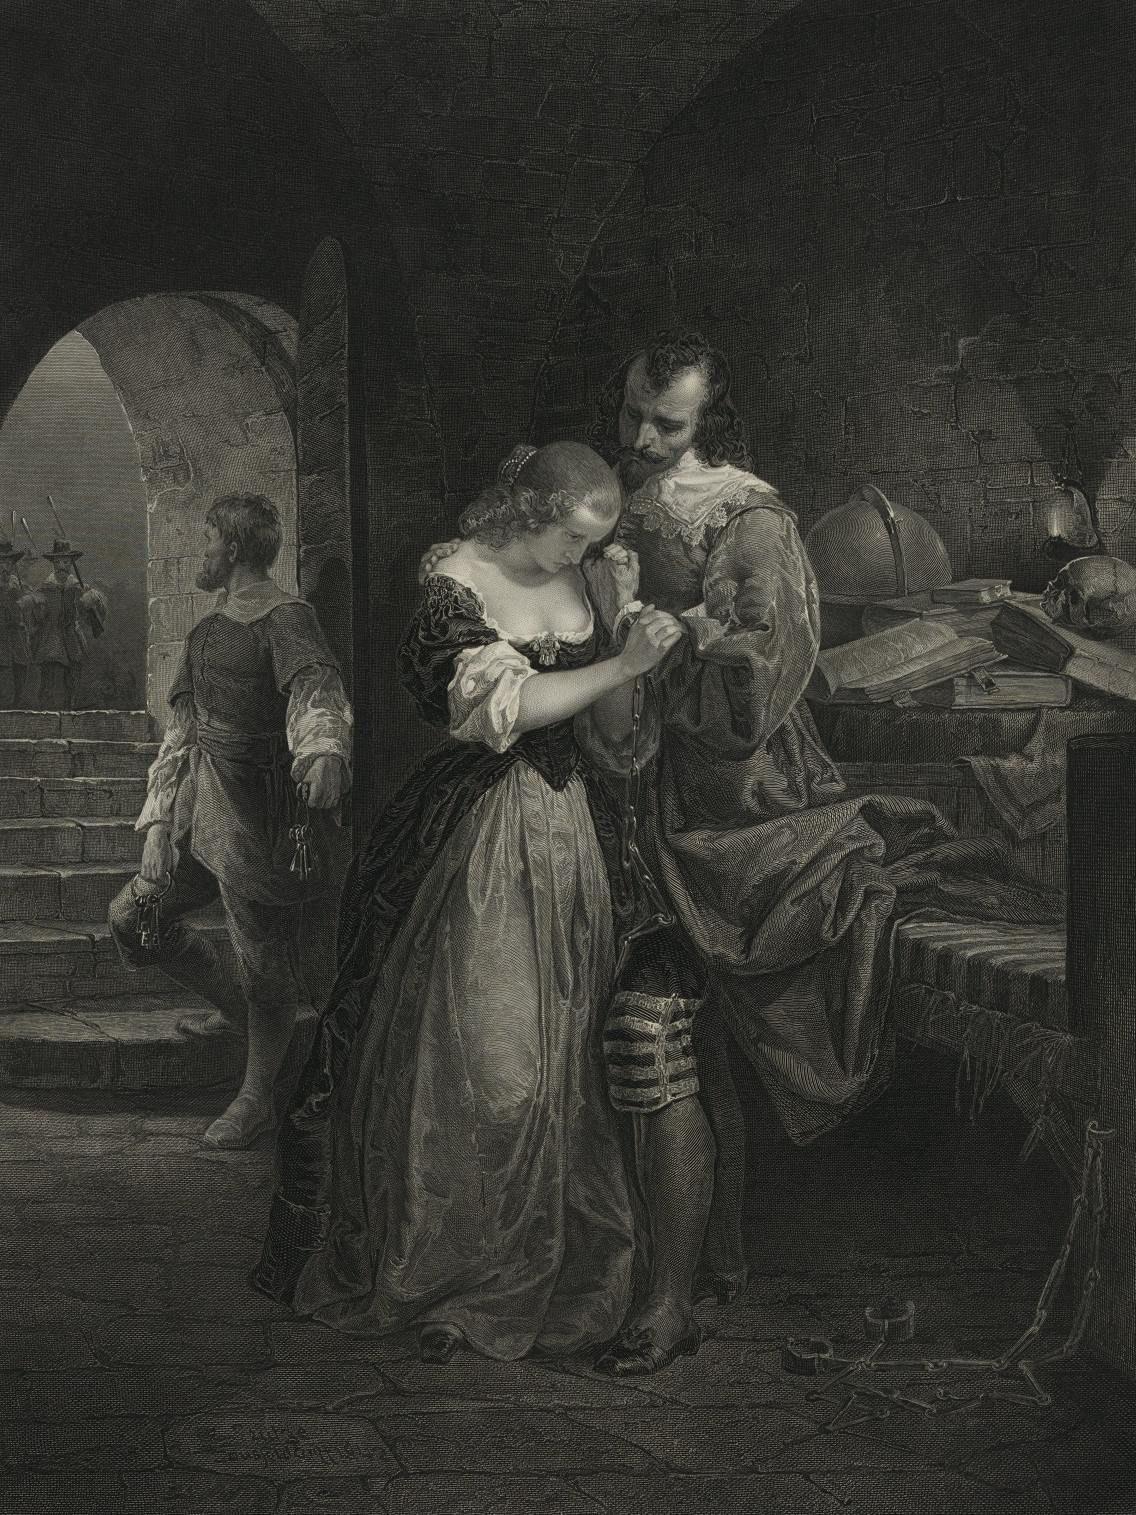 Sir Walter Raleigh, parting with his wife (1846)_Emanuel Gottlieb Leutze 57.8 x 38.1 cm_result.jpg